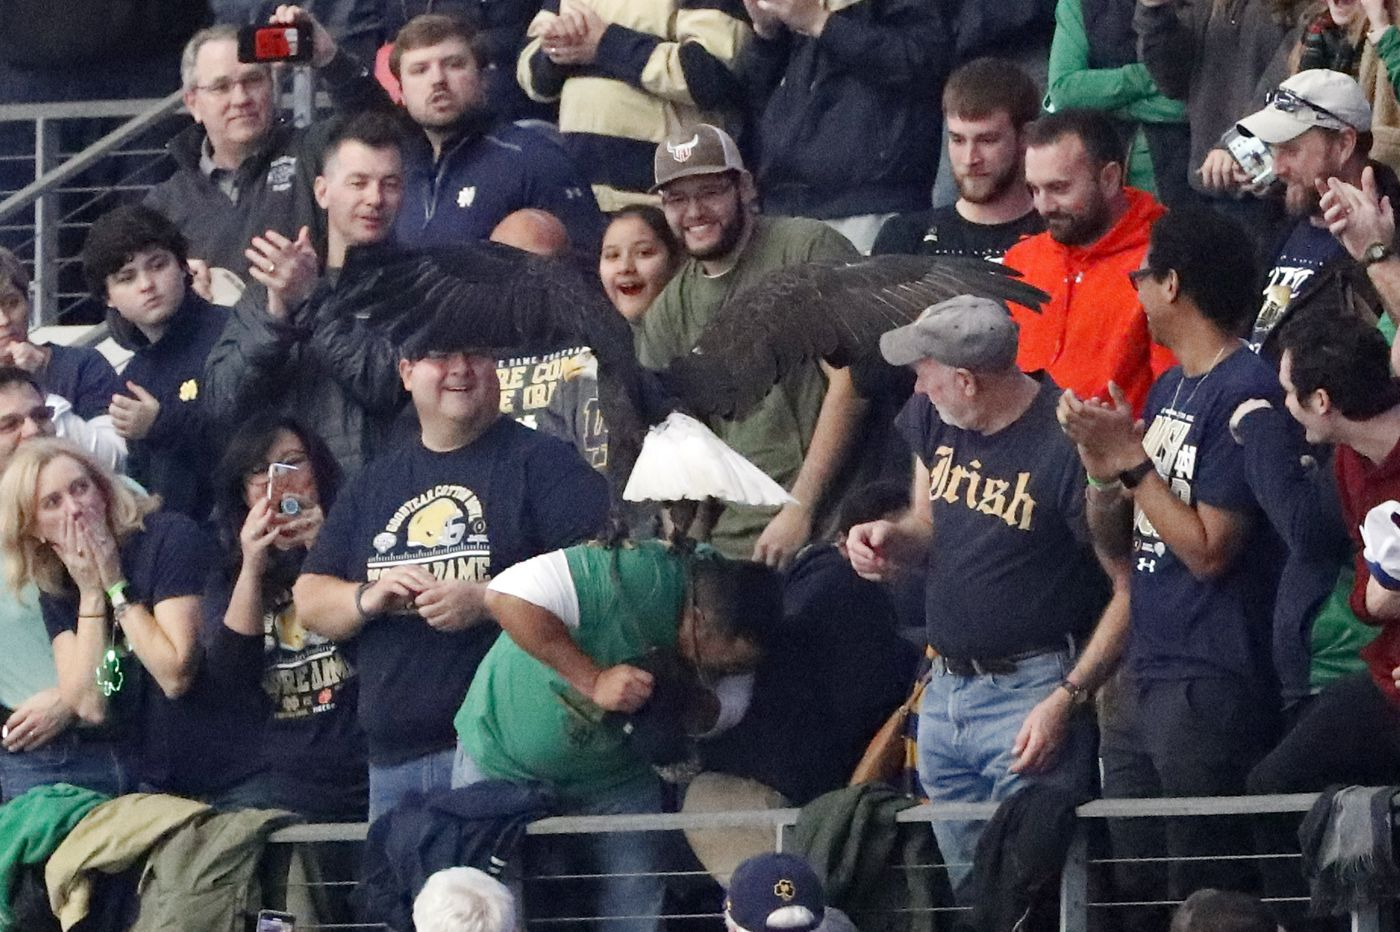 A rogue bald eagle at the Cotton Bowl lands — on a Philadelphia Eagles fan, naturally.